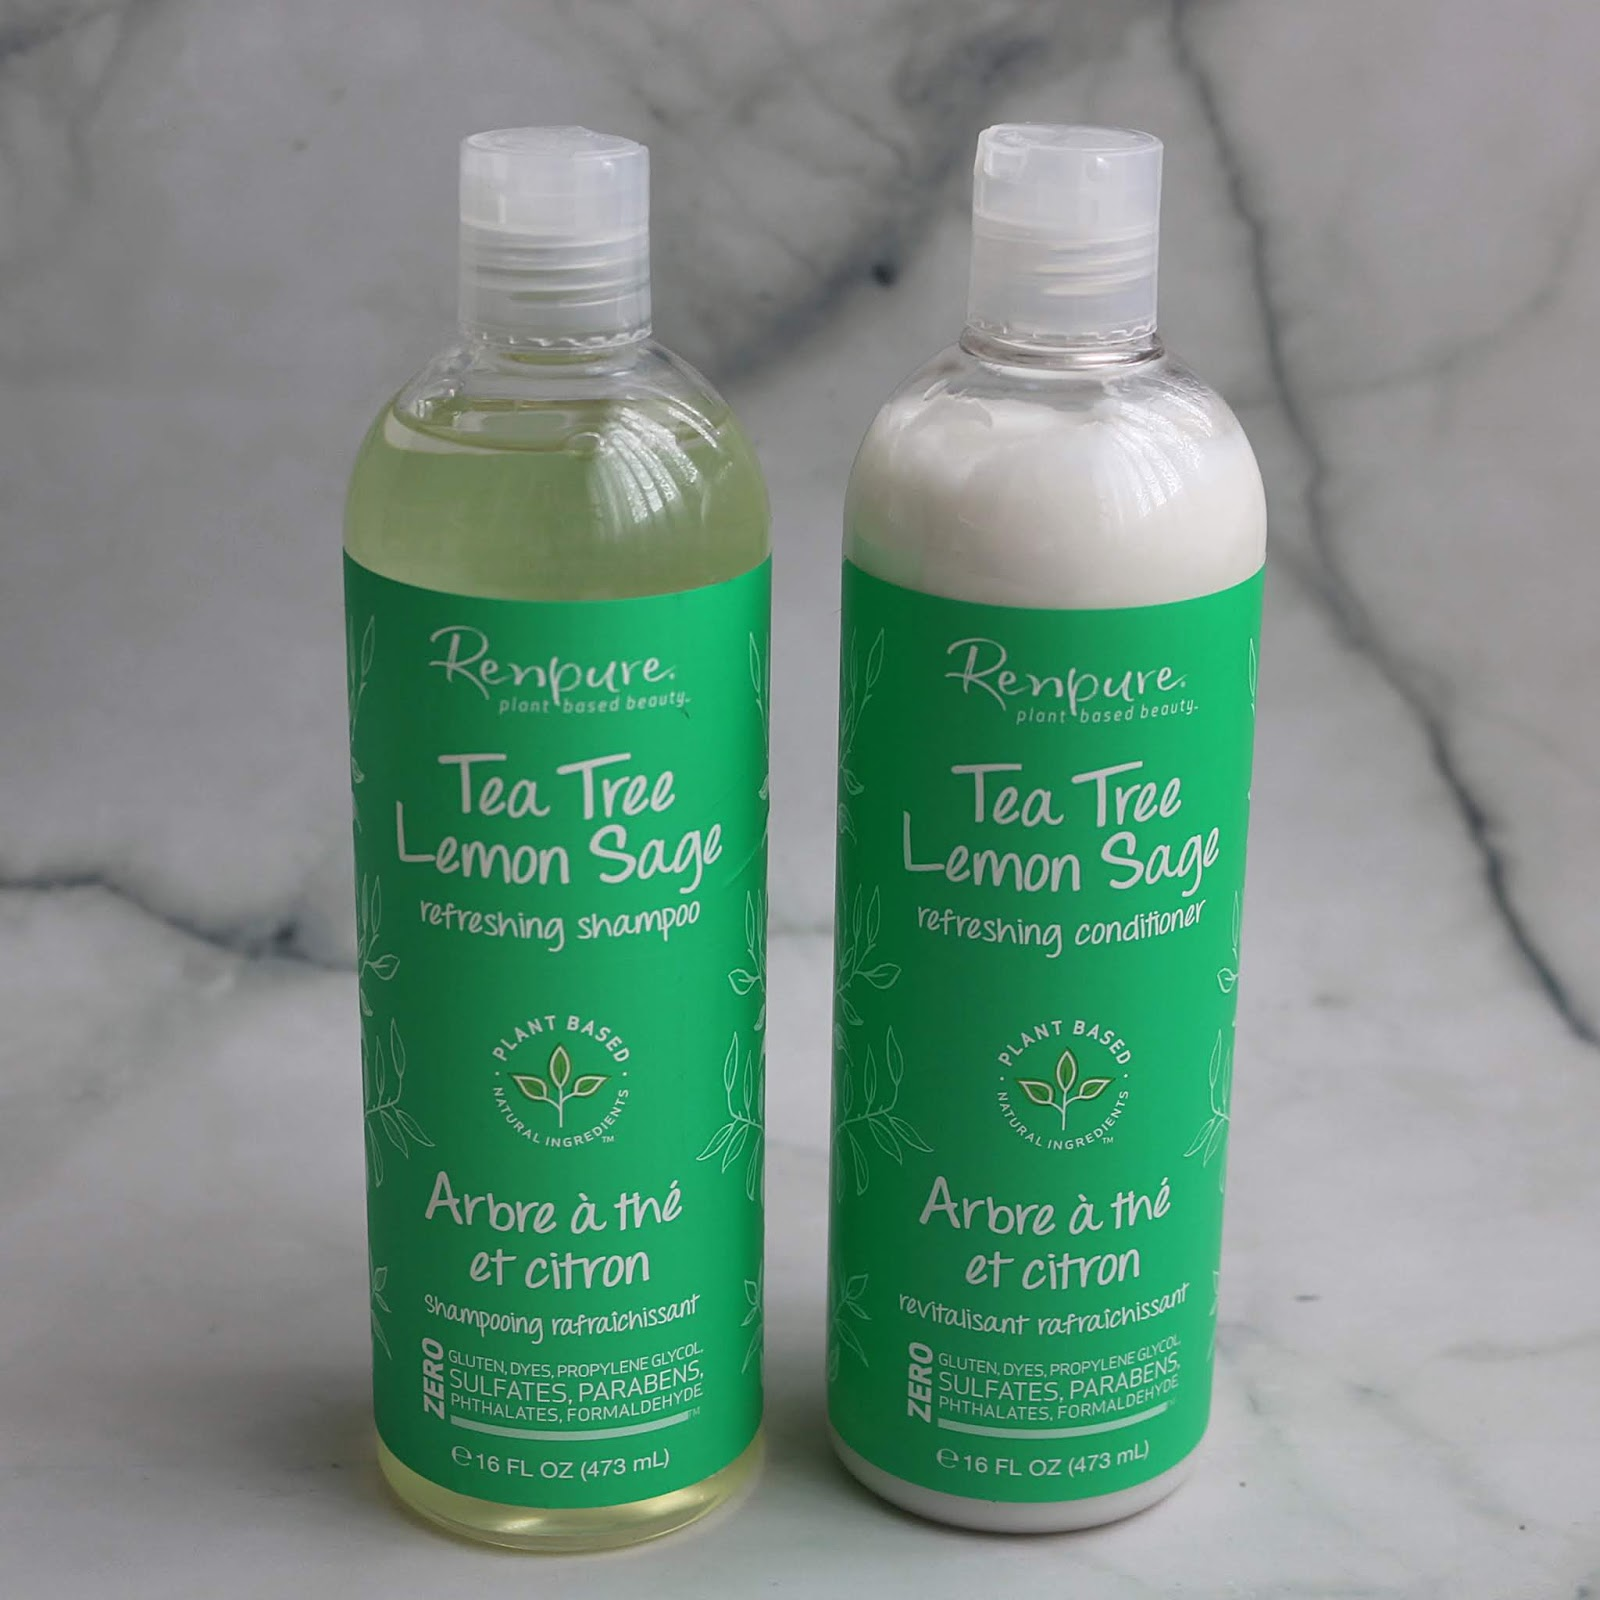 Renpure Tea Tree Lemon Sage Refreshing Shampoo and Conditioner